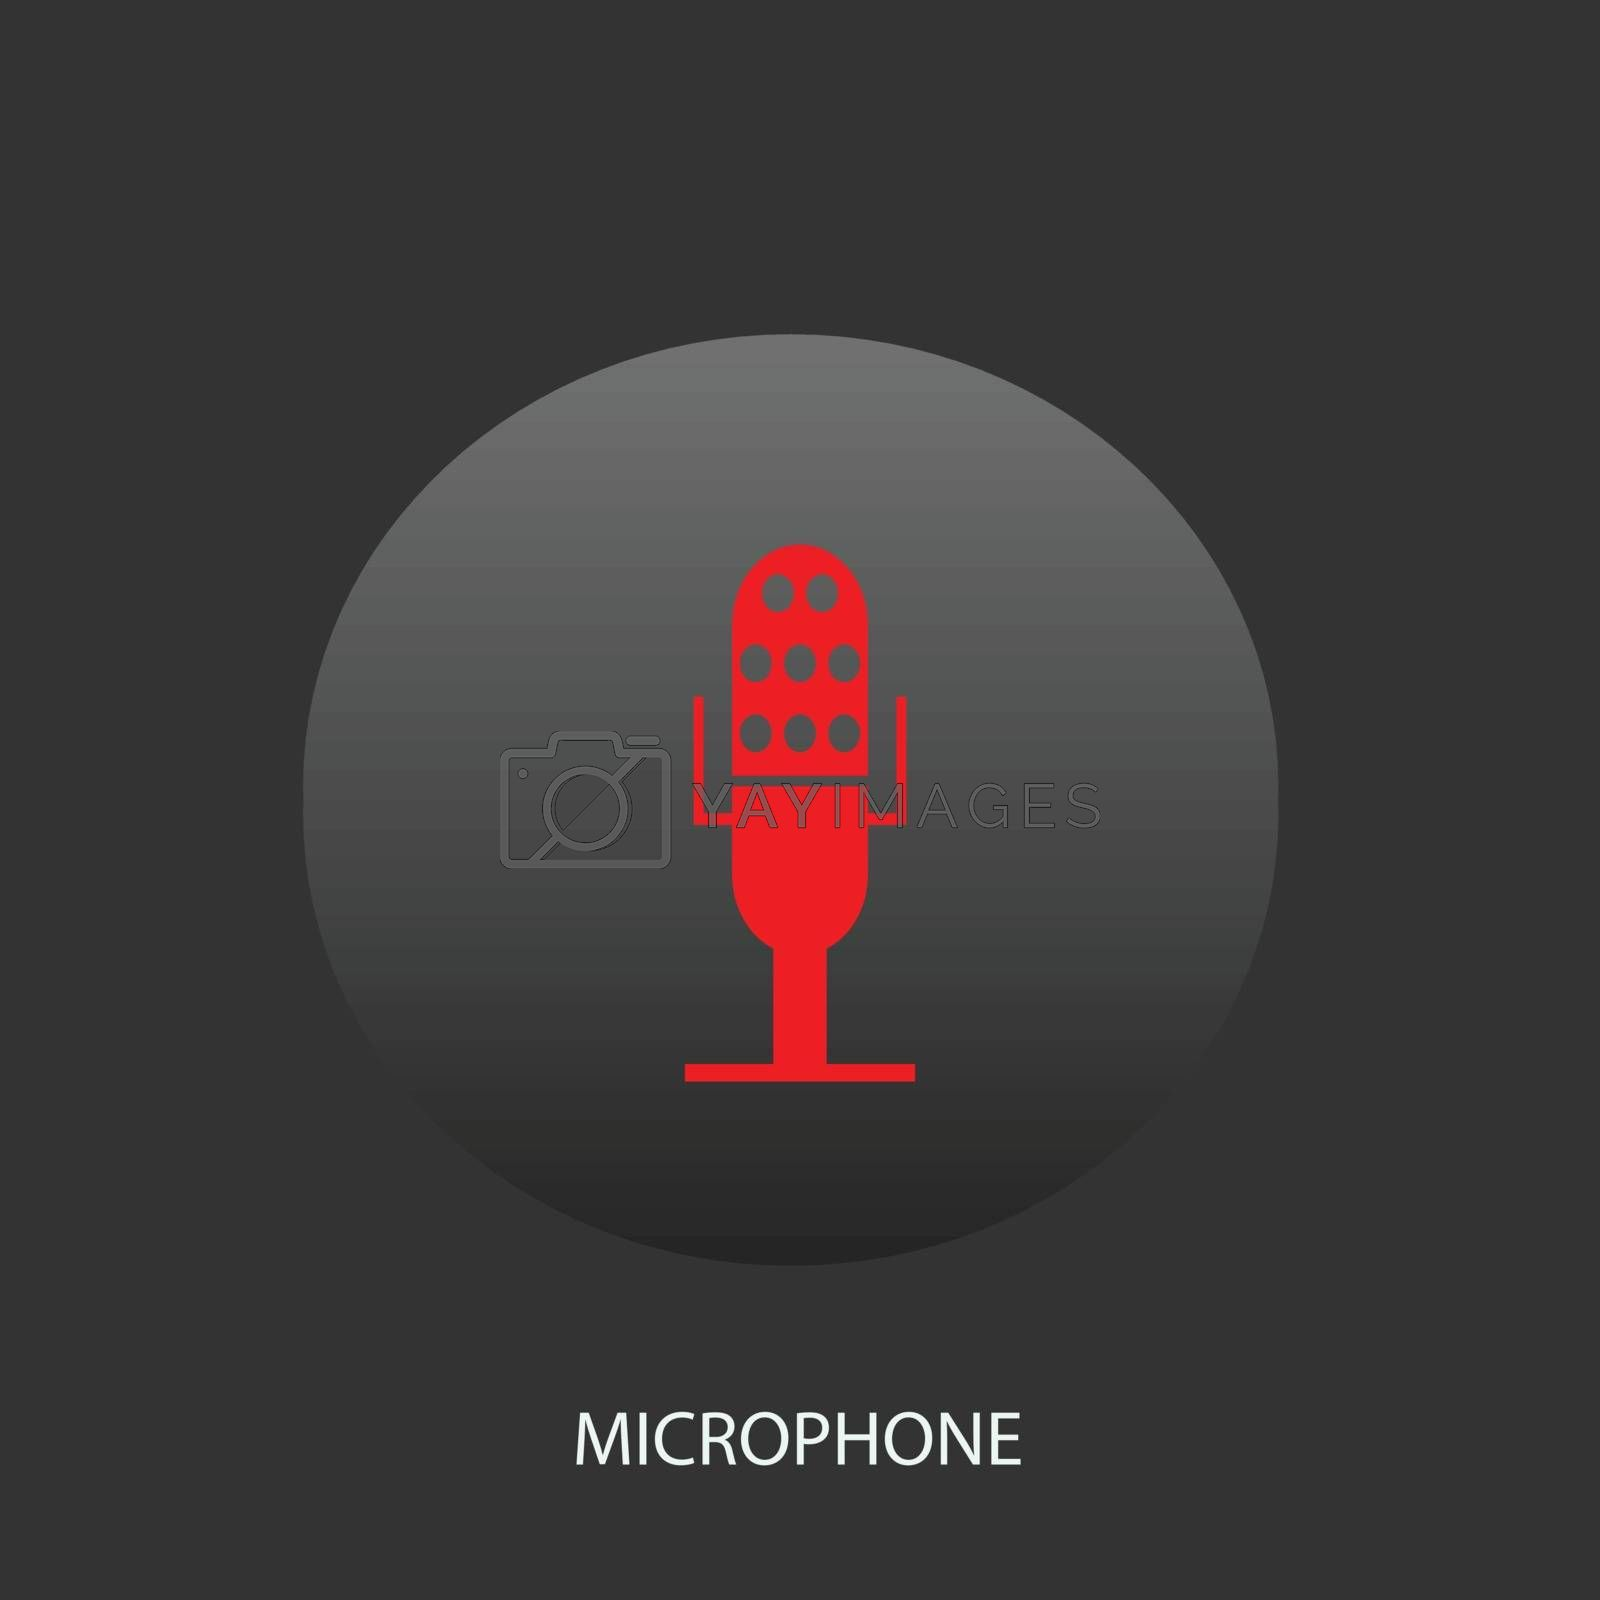 Illustration on which the microphone icon against a dark background is represented